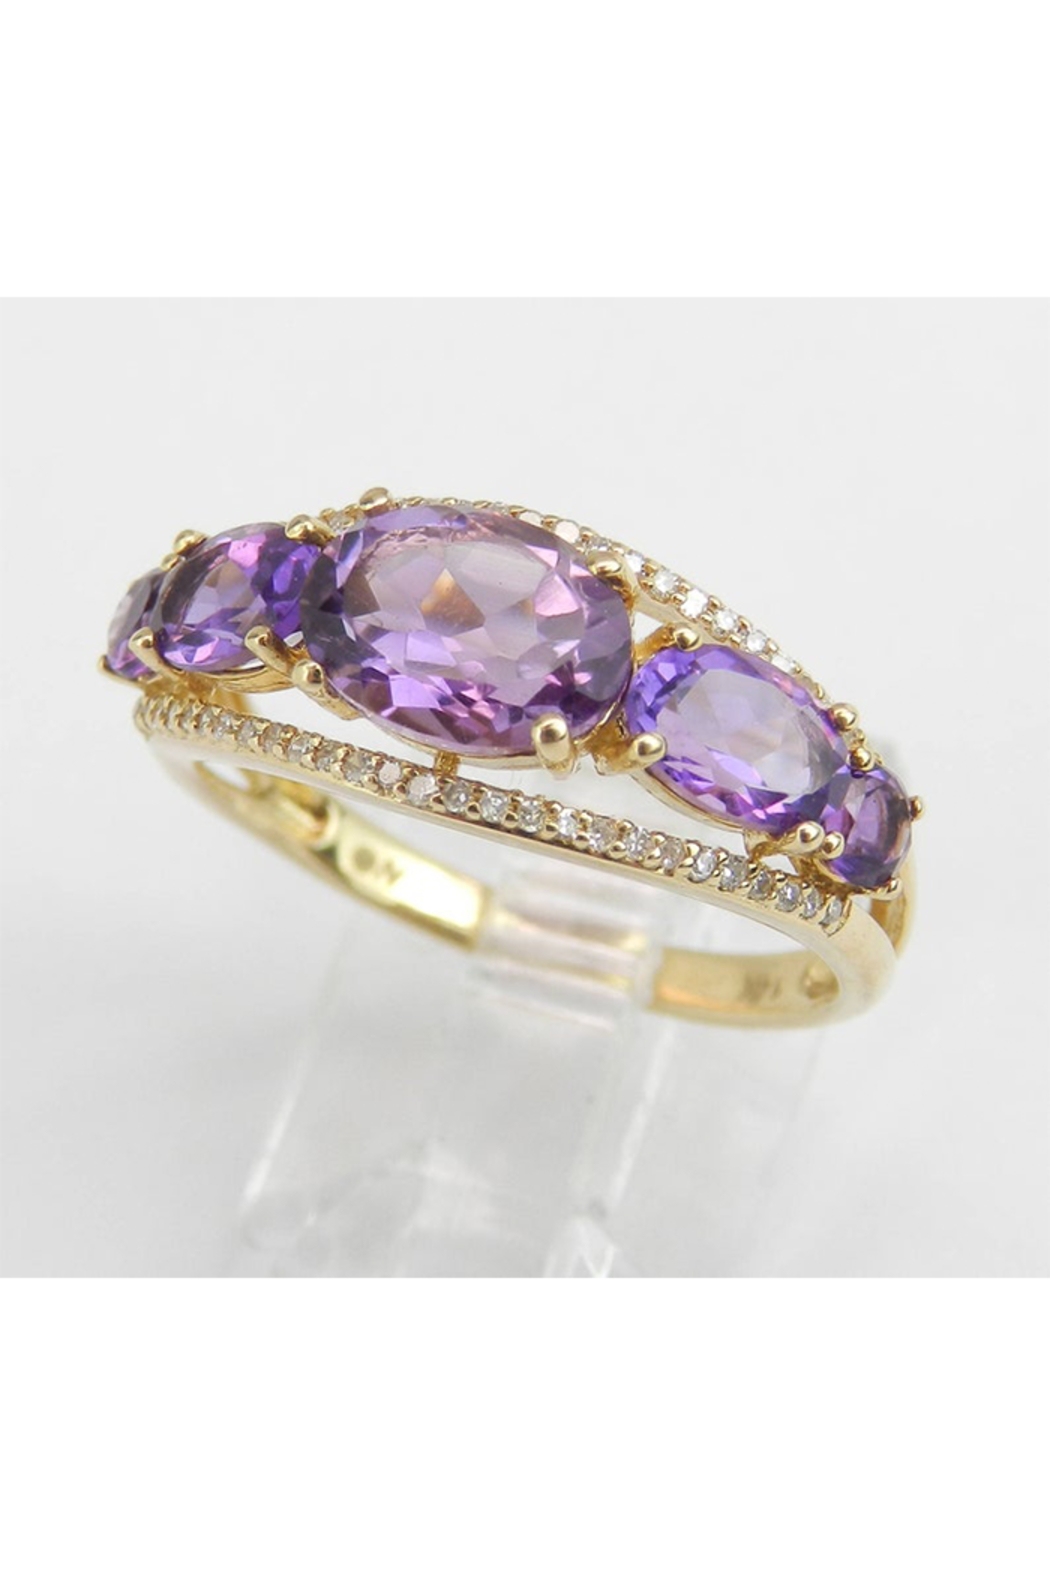 Margolin & Co 14K Yellow Gold Diamond and Amethyst Cocktail Ring Anniversary Band Size 7 Stackable Look - Side Cropped Image